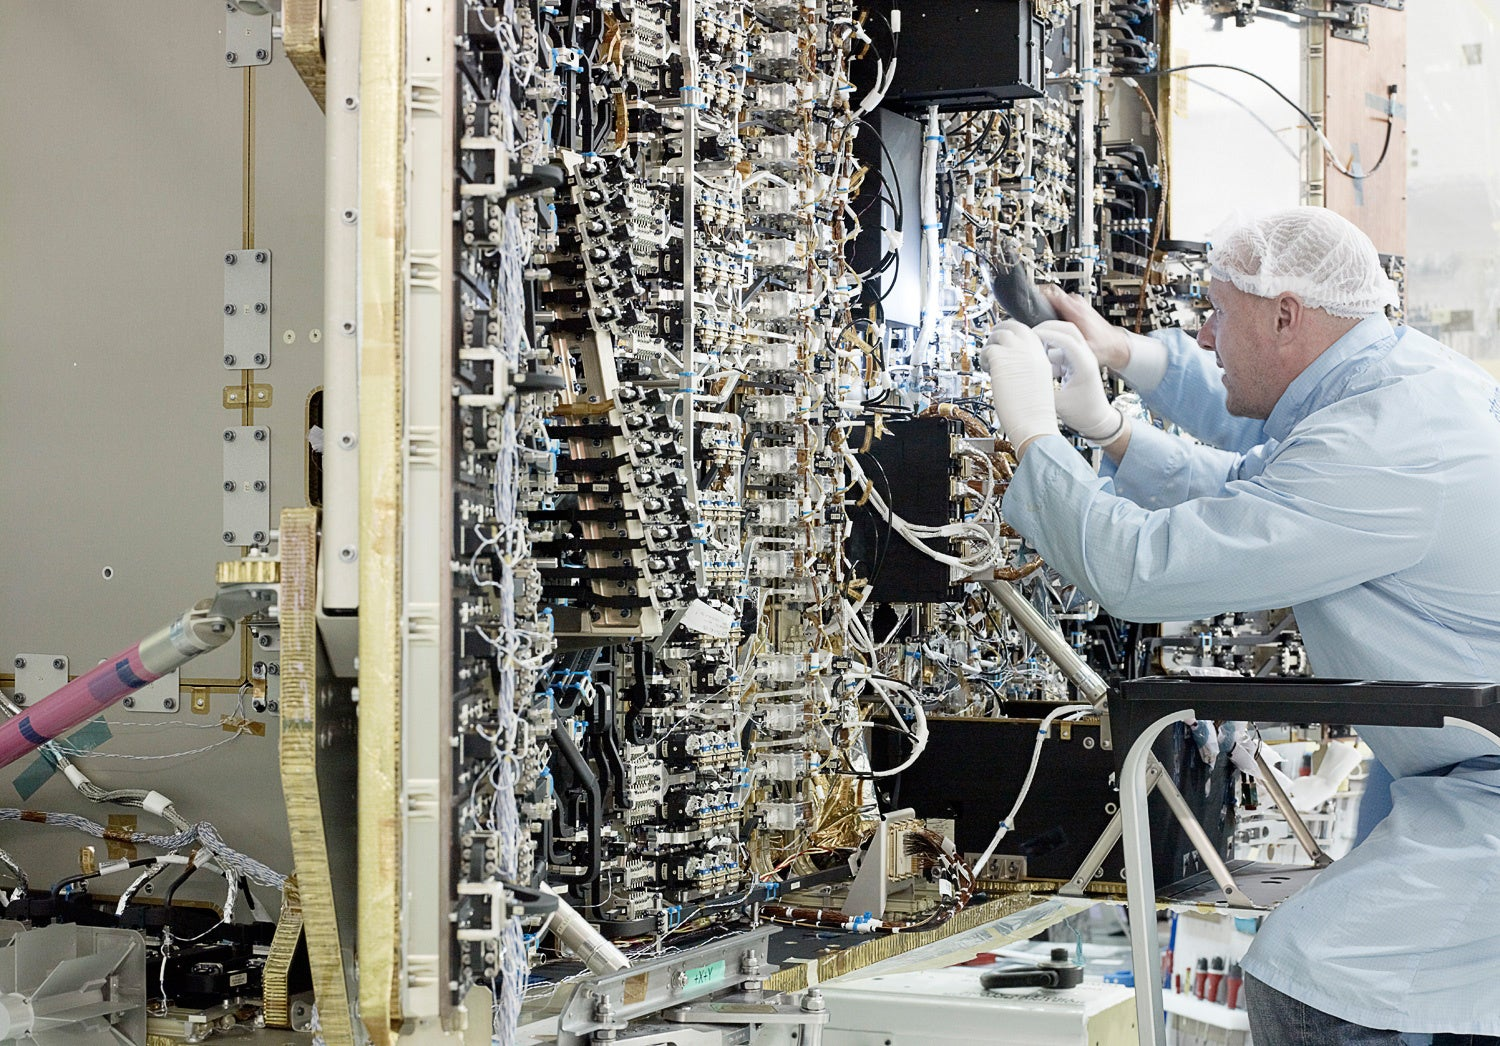 The interior of a communications satellite is a cable nightmare